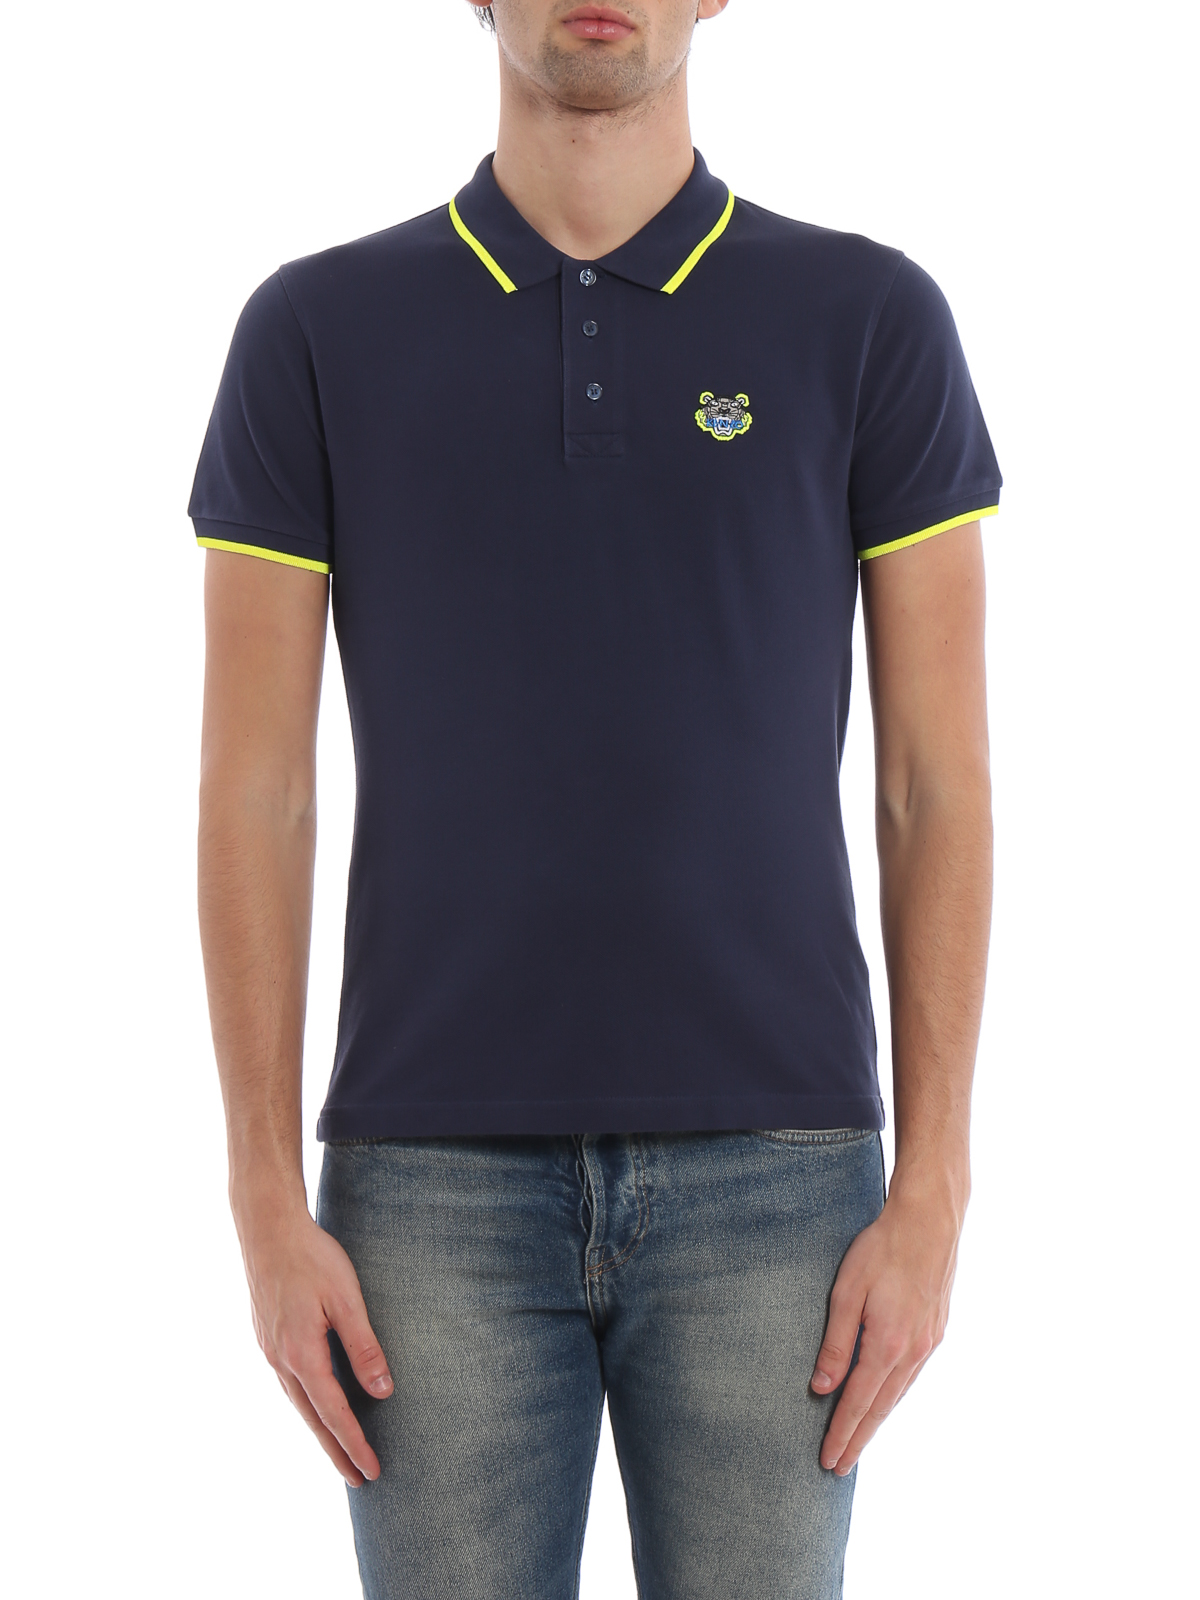 602d4c6c Kenzo - K Fit Tiger crest ink cotton polo shirt - polo shirts ...